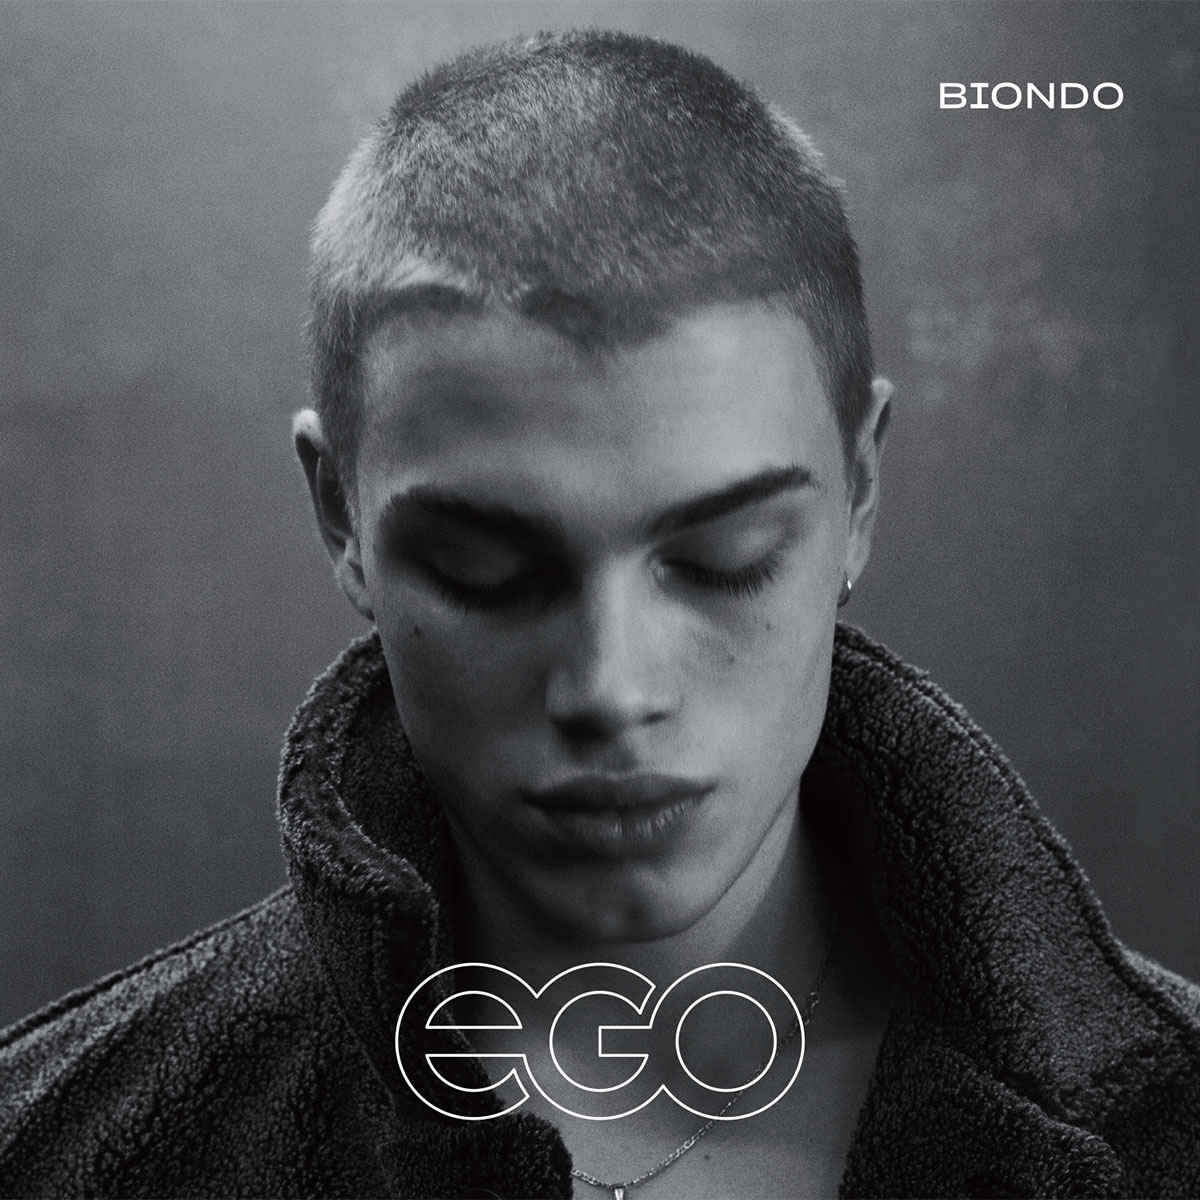 Biondo album Ego ELNÒS Shopping